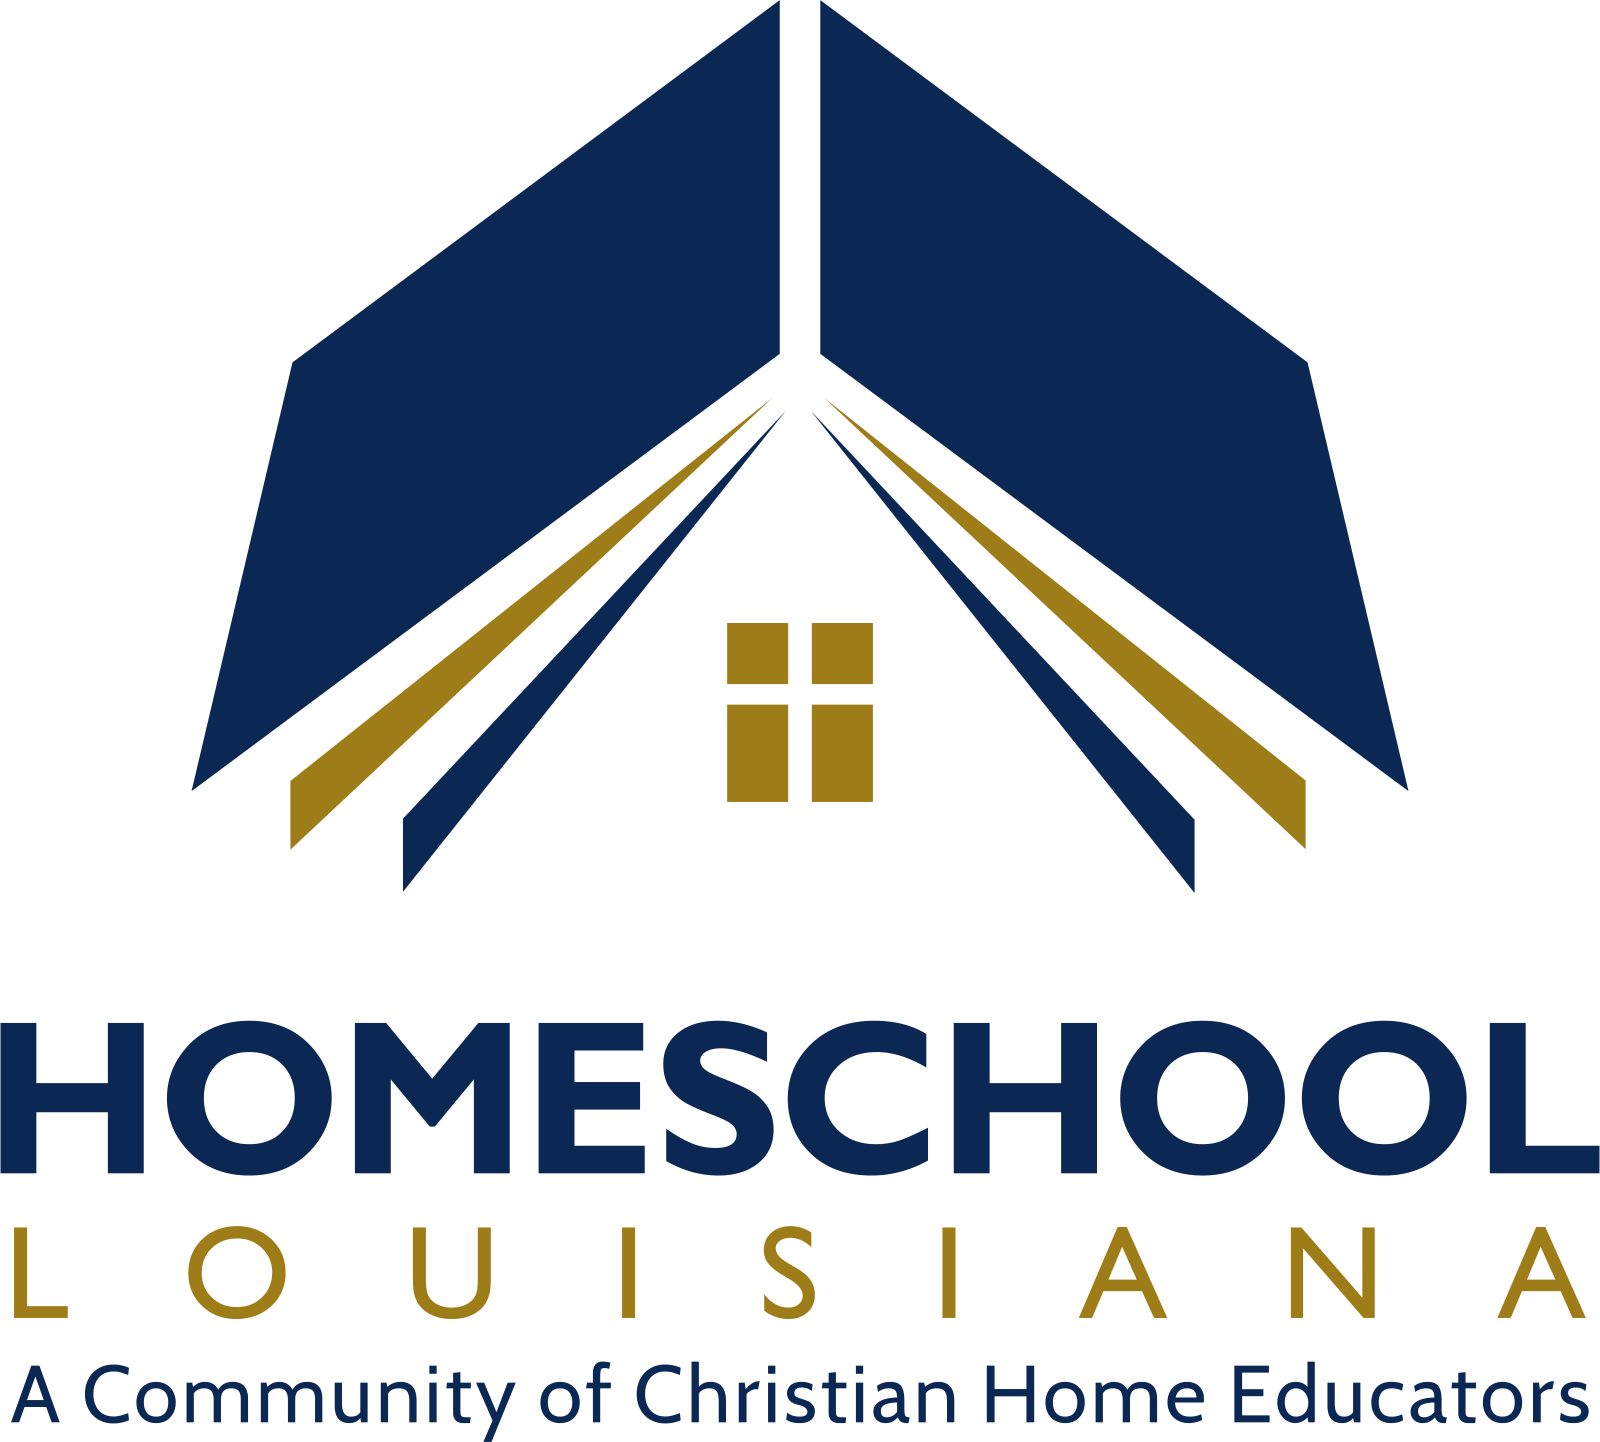 HSLA & Homeschool University